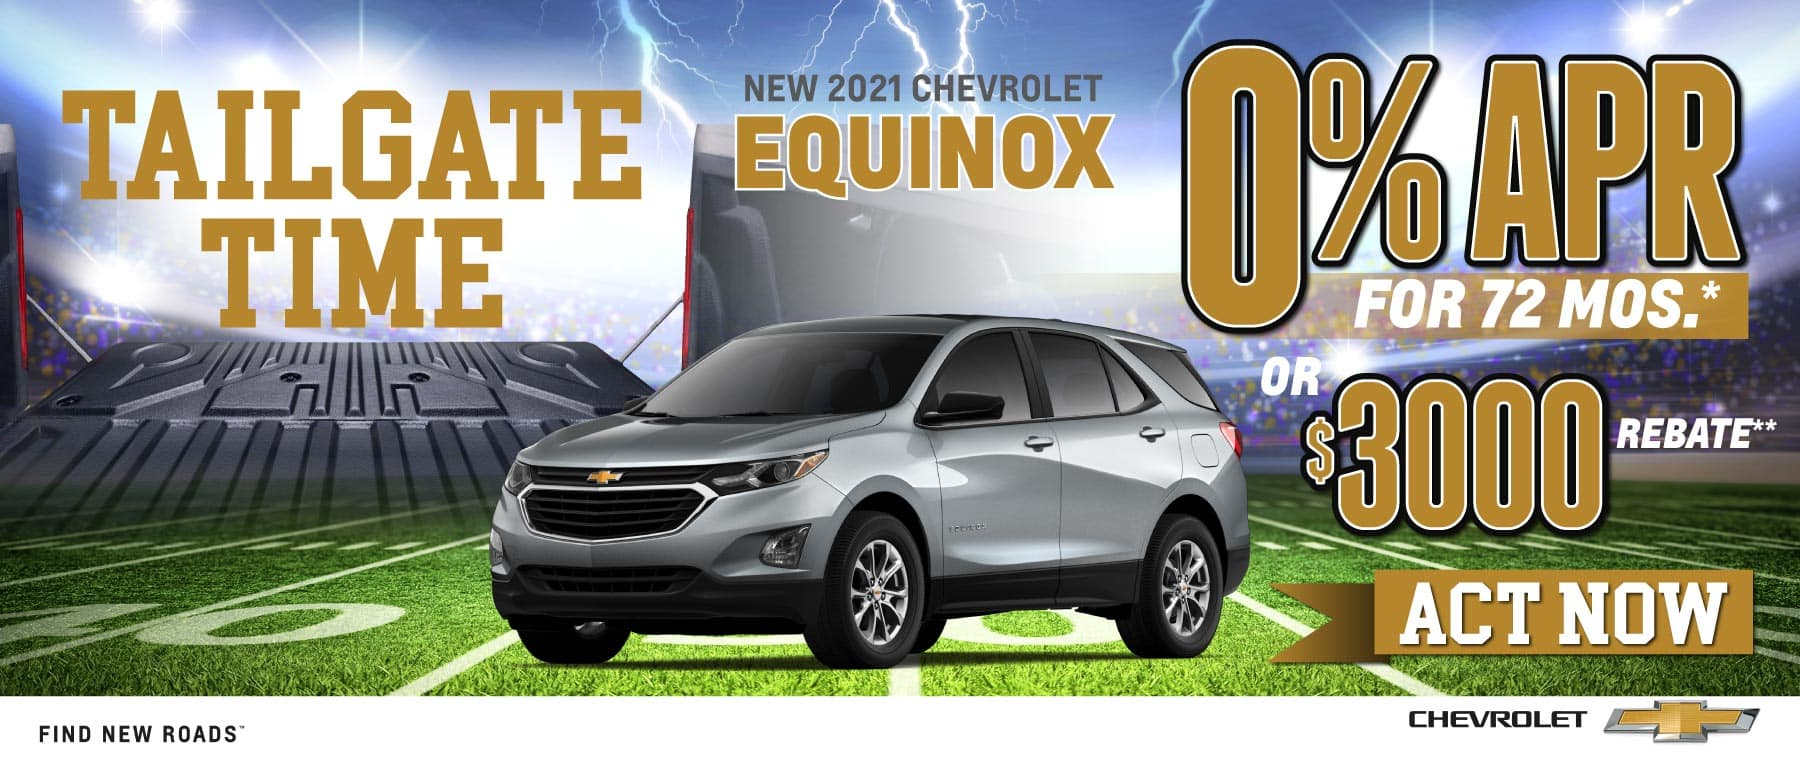 New 2021 Chevy Equinox - 0% APR for 72 months - Act Now